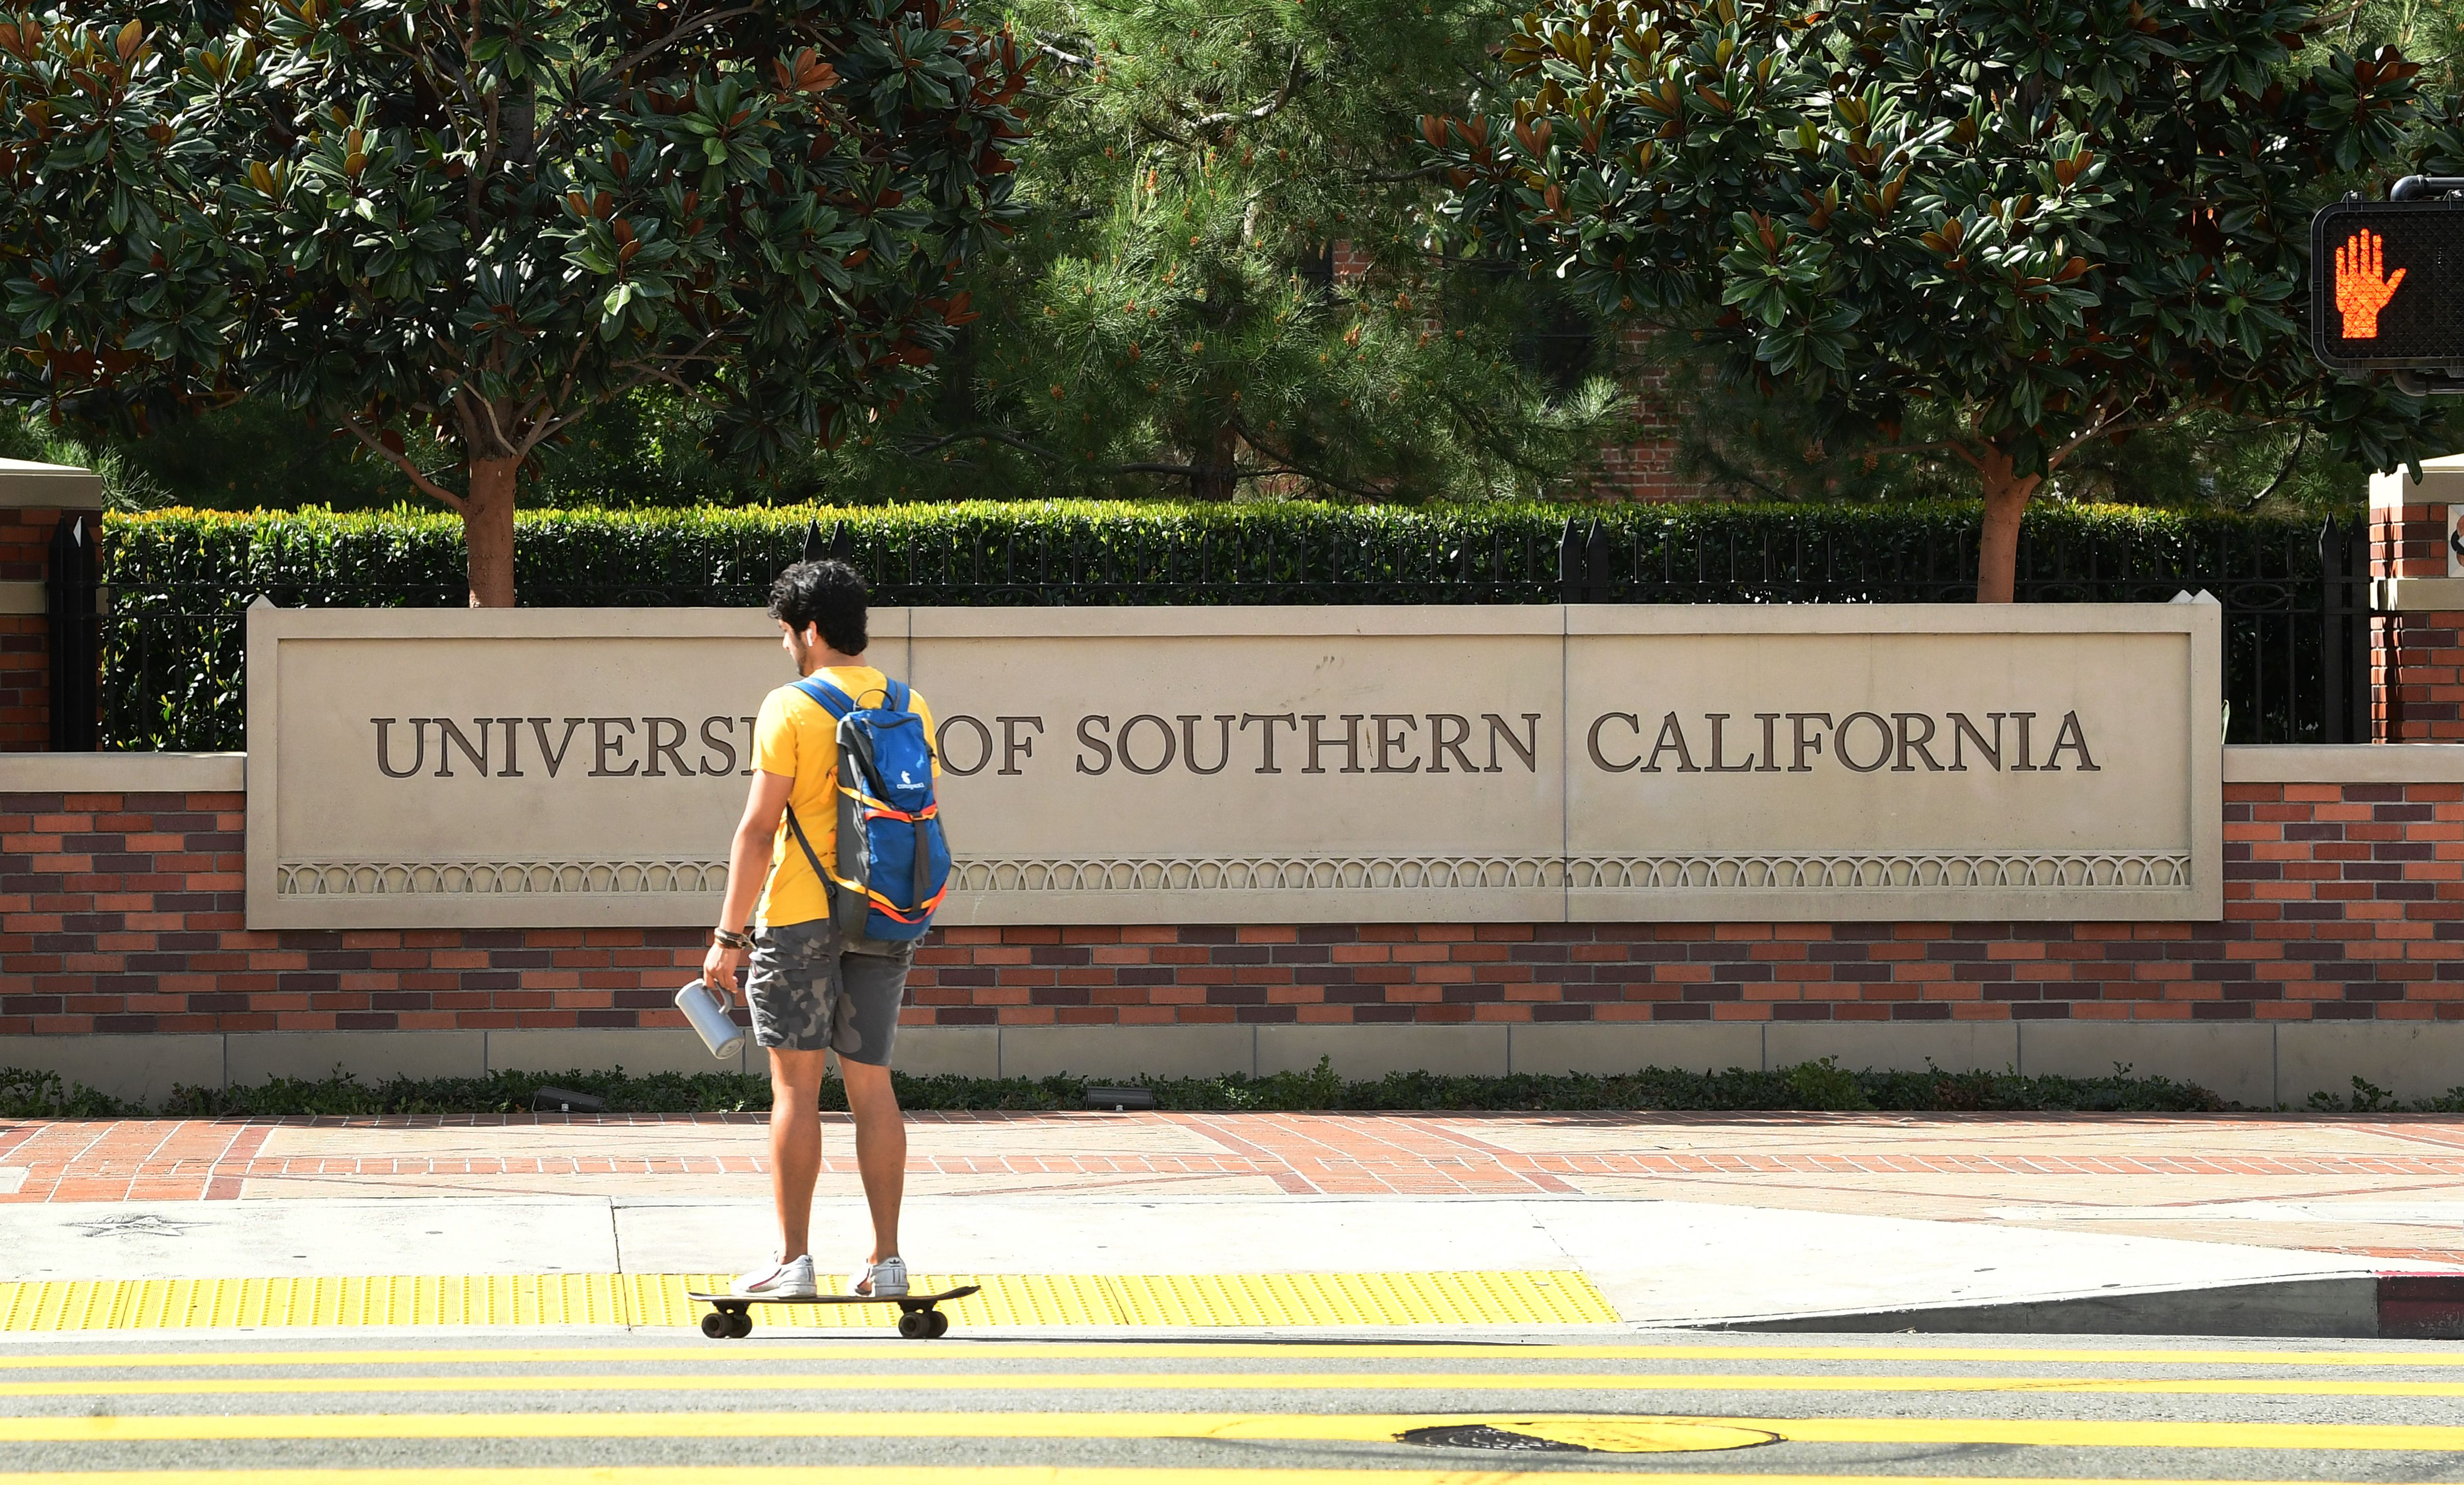 Several Dozen Virus Cases Occurred on USC's Fraternity Row